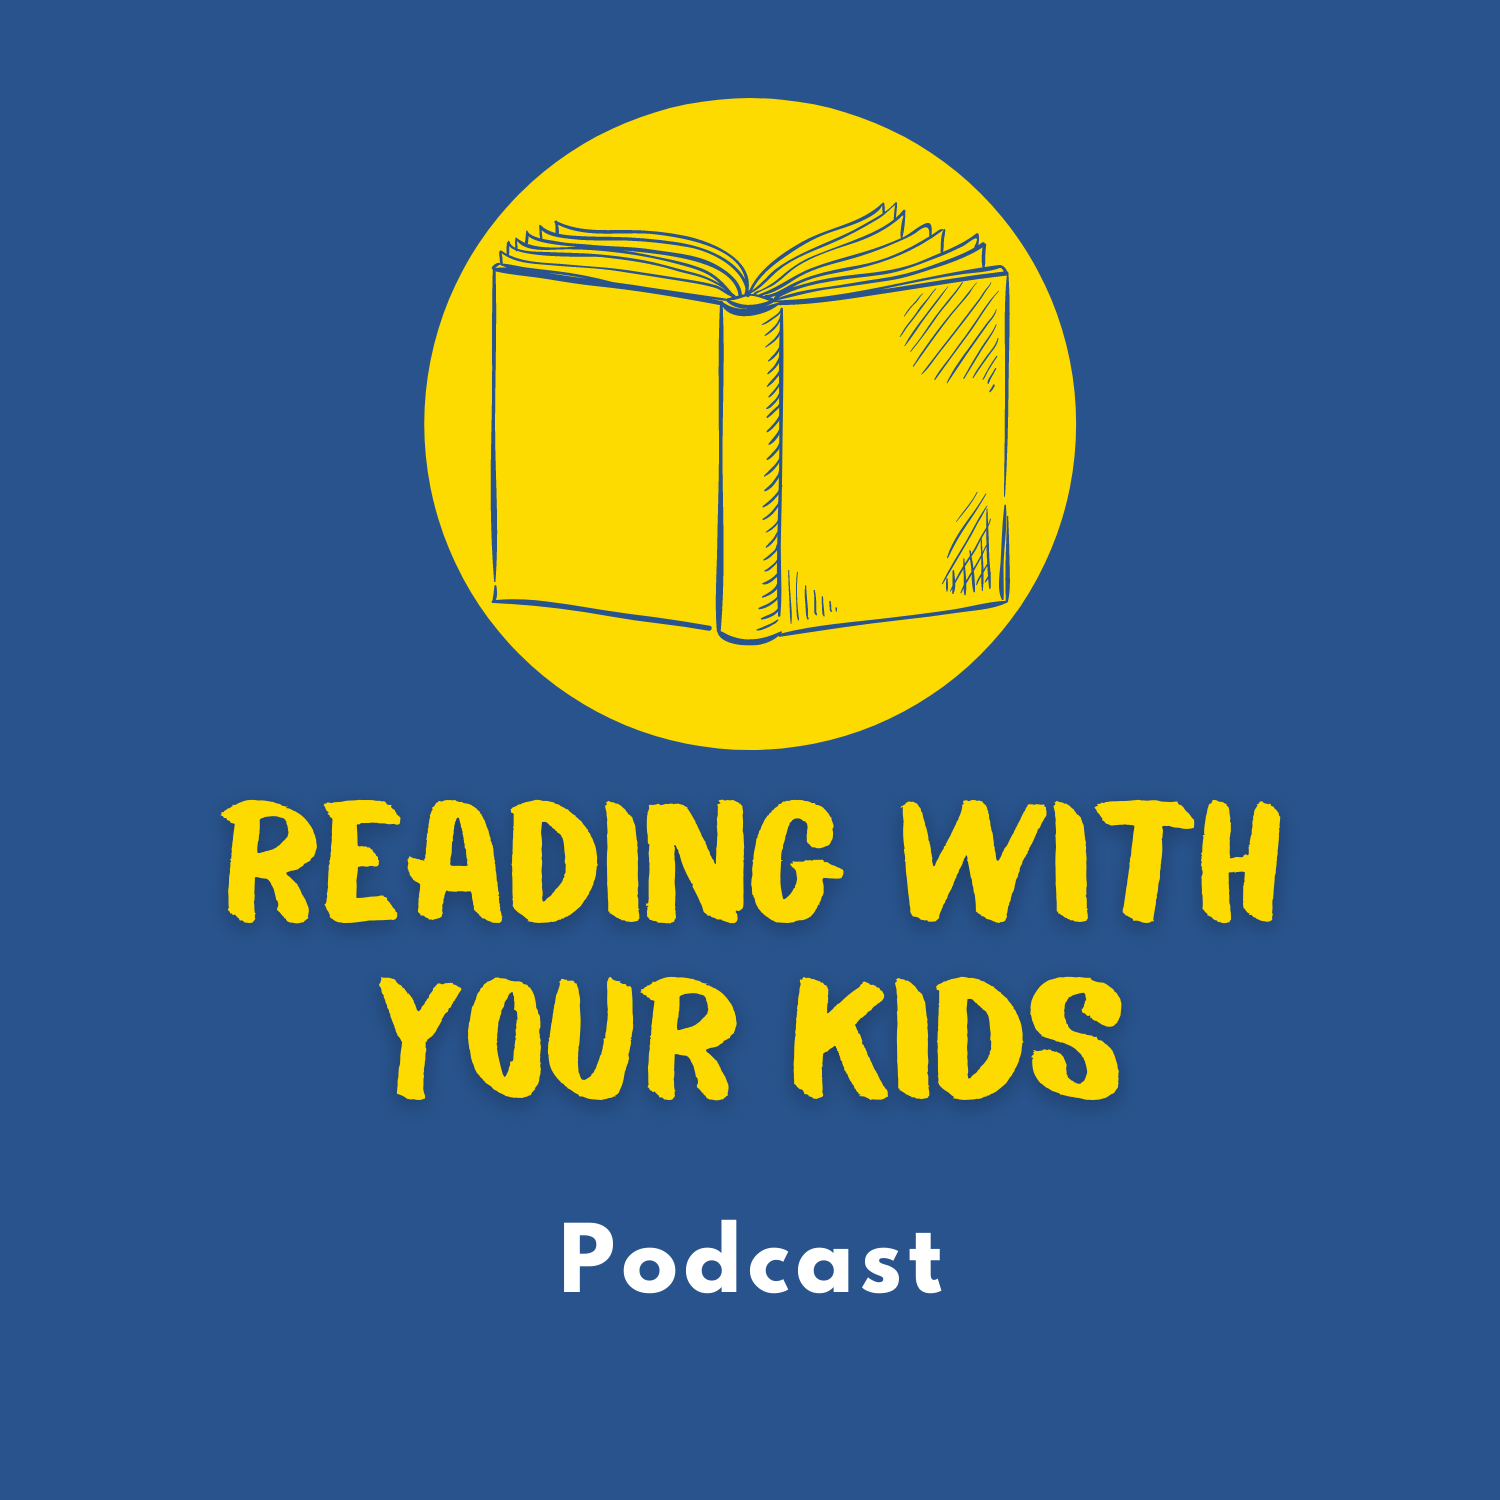 Reading With Your Kids Podcast show art